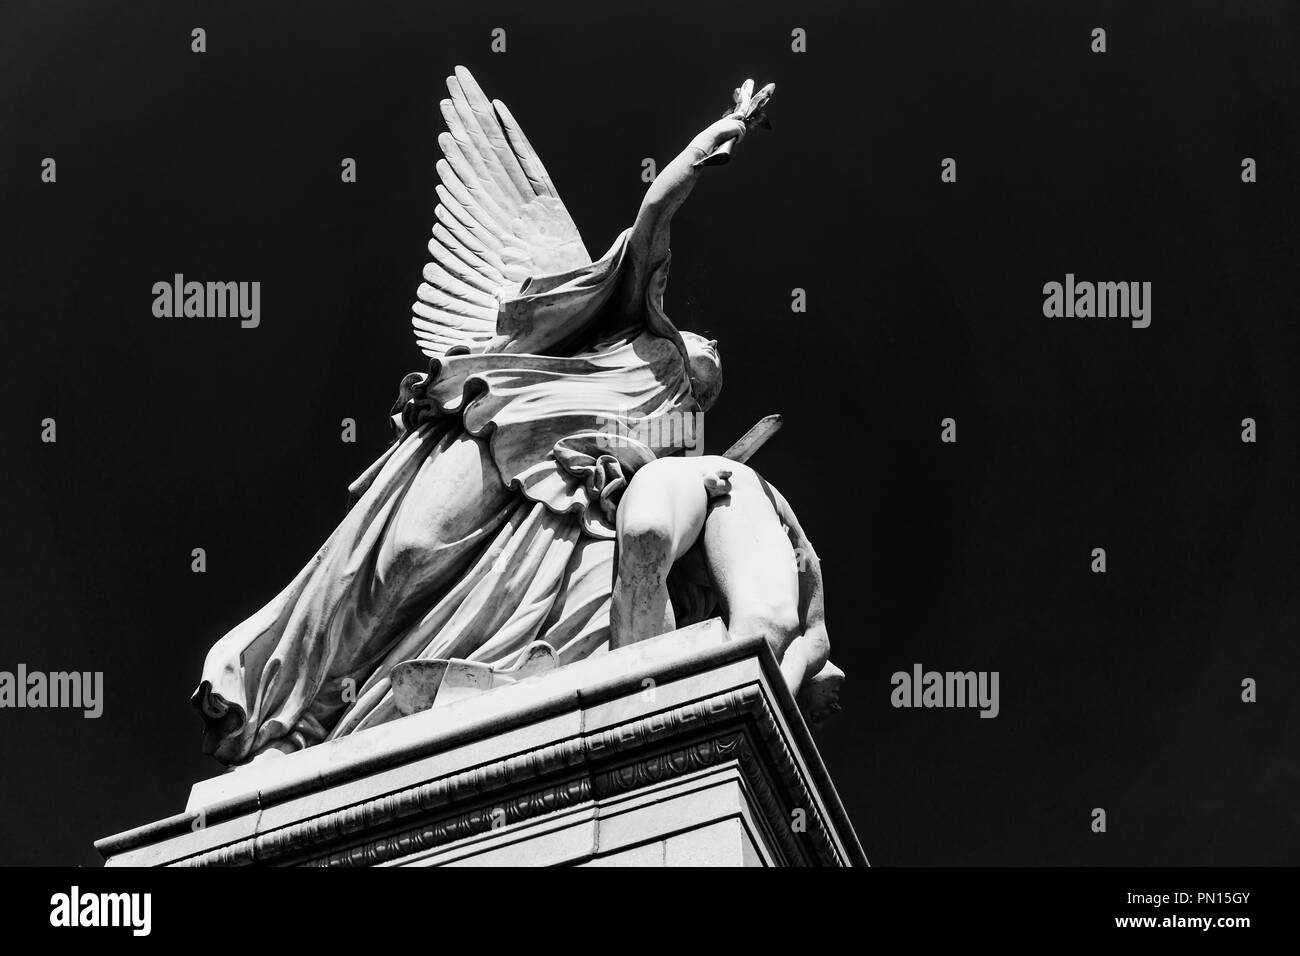 Berlin, Germany, July 28, 2018: Dramatic Angle of Sculpture of Nike - Greek Goddess of Victory - Takes the Fallen Hero to Olympus on Schloss Bridge by - Stock Image